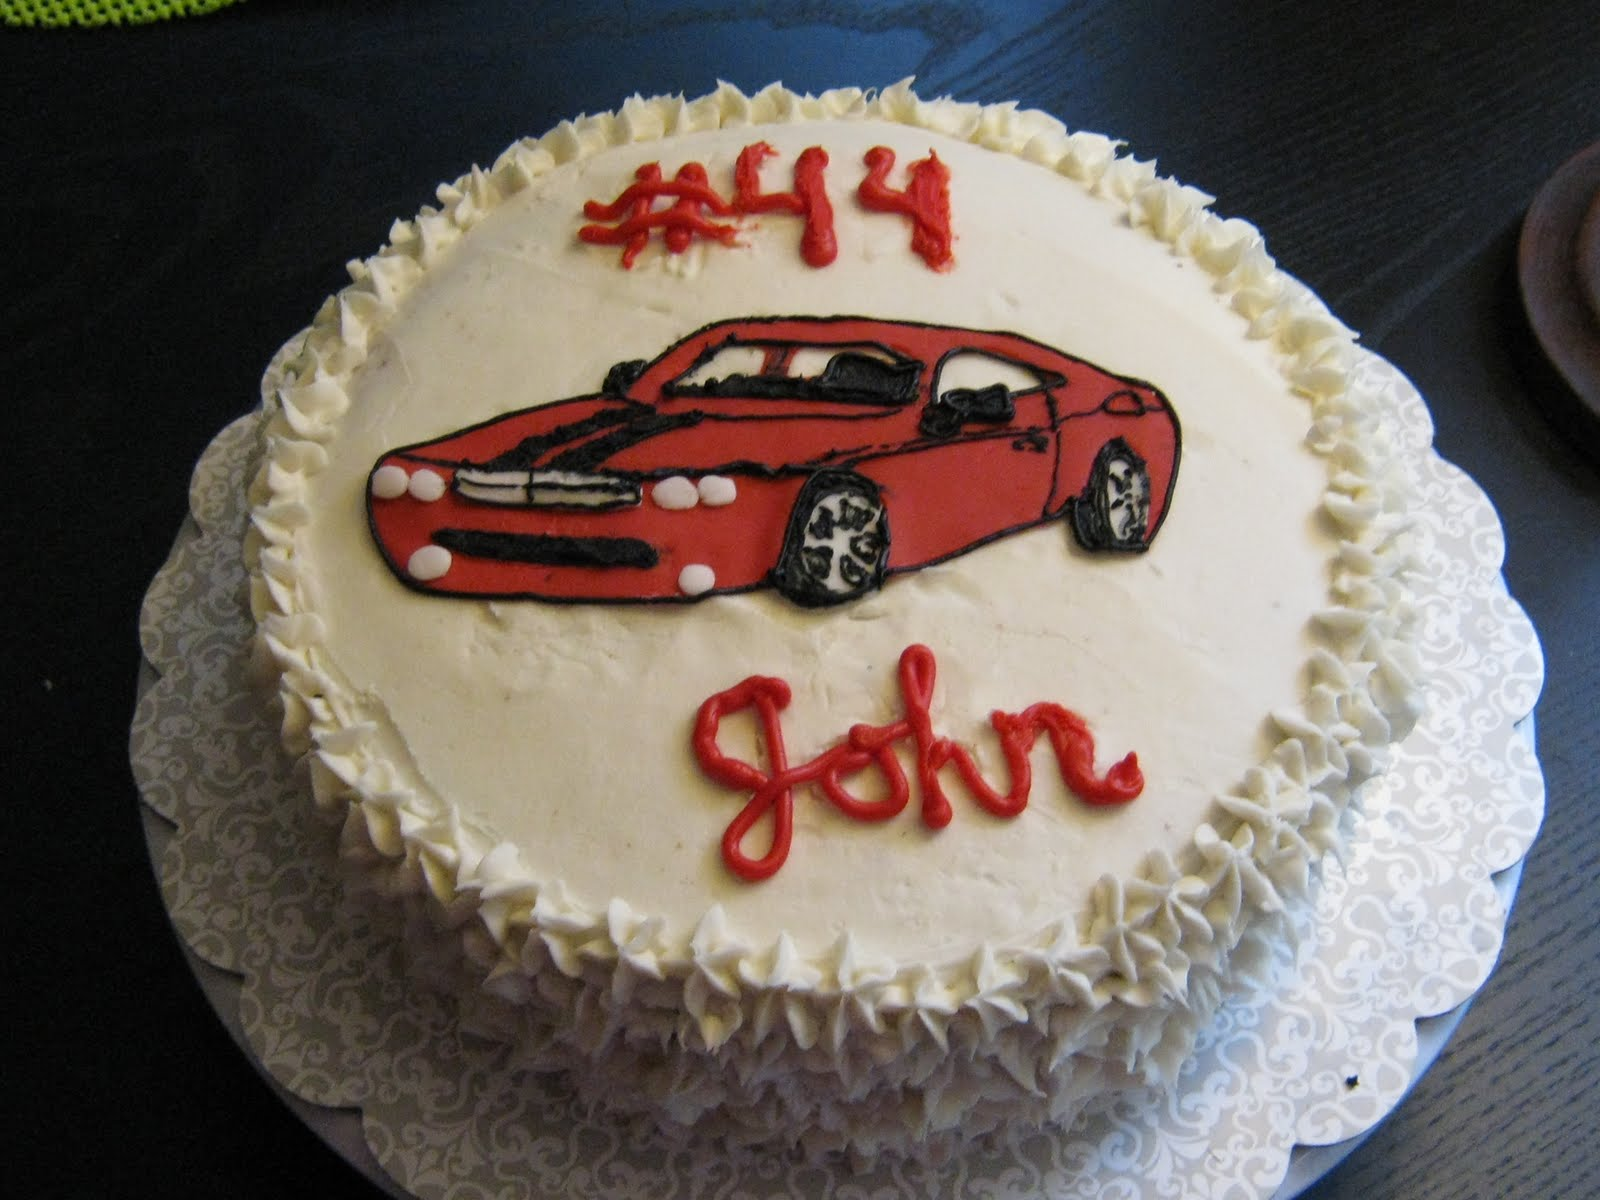 A New Leaf: John s Birthday Cake